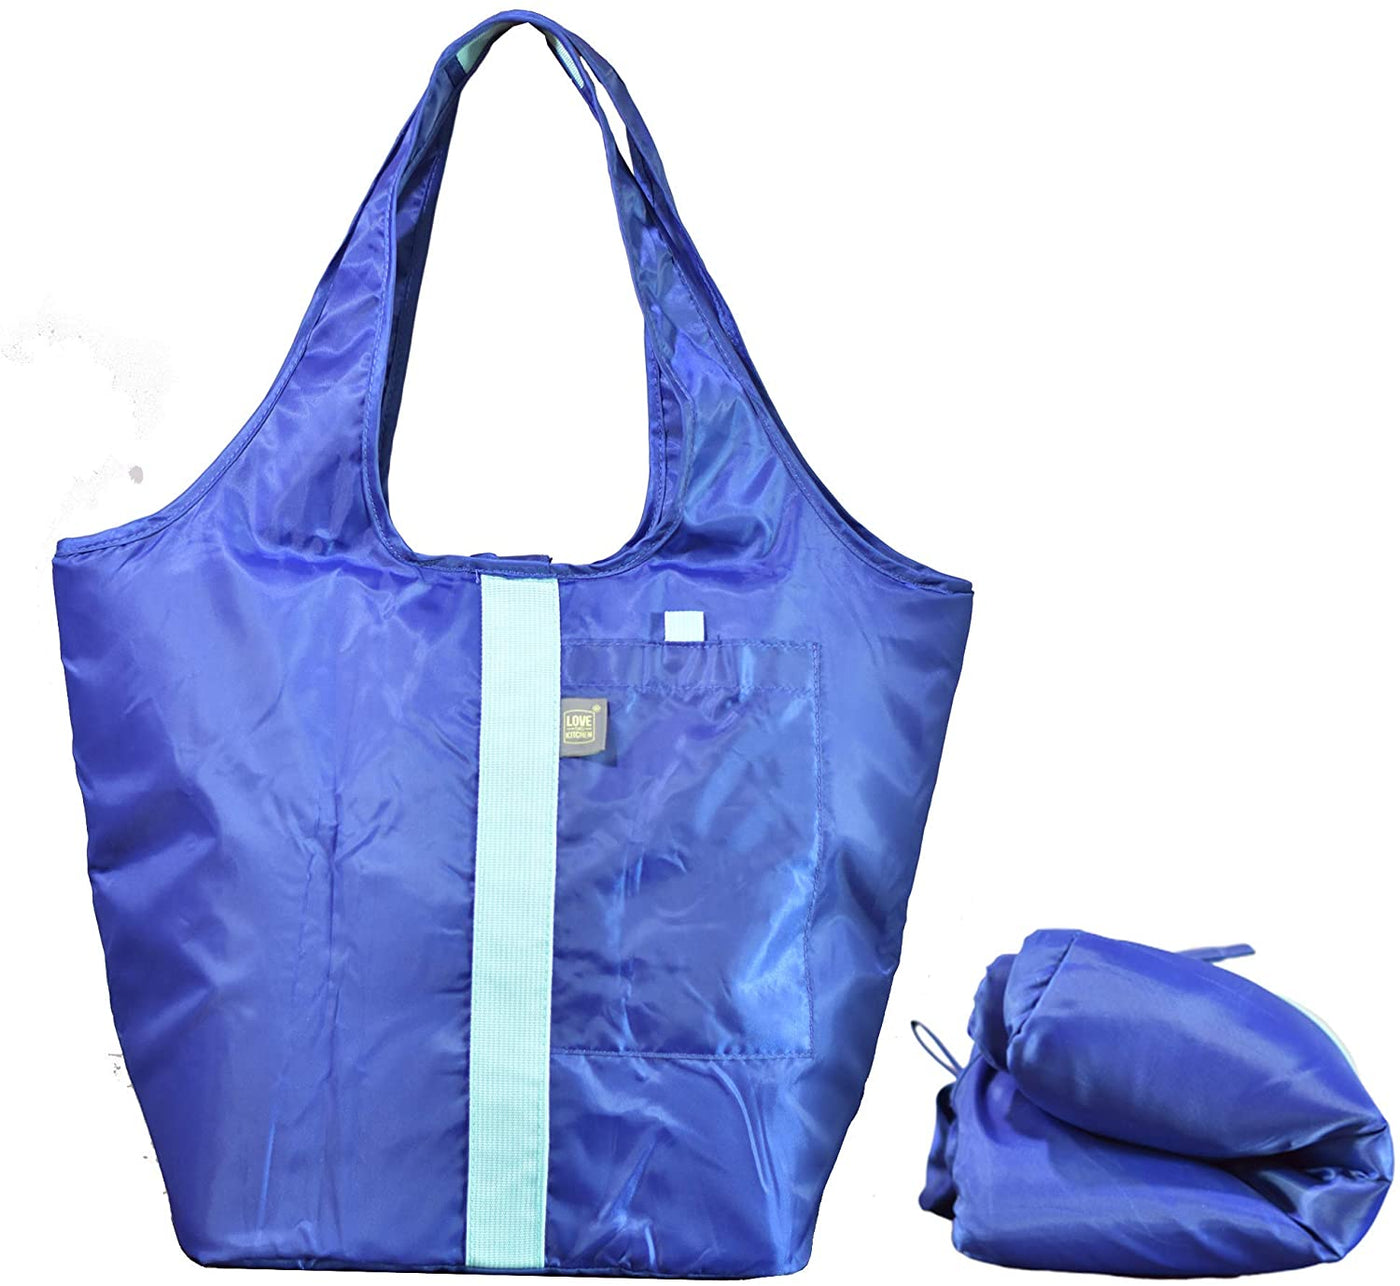 The Ultimate Insulated Grocery/Shopping Tote Bag with Zipper & Pocket | Foldable & Washable | Great as an Insulated Food Bag or Cool Beach/Picnic Bag